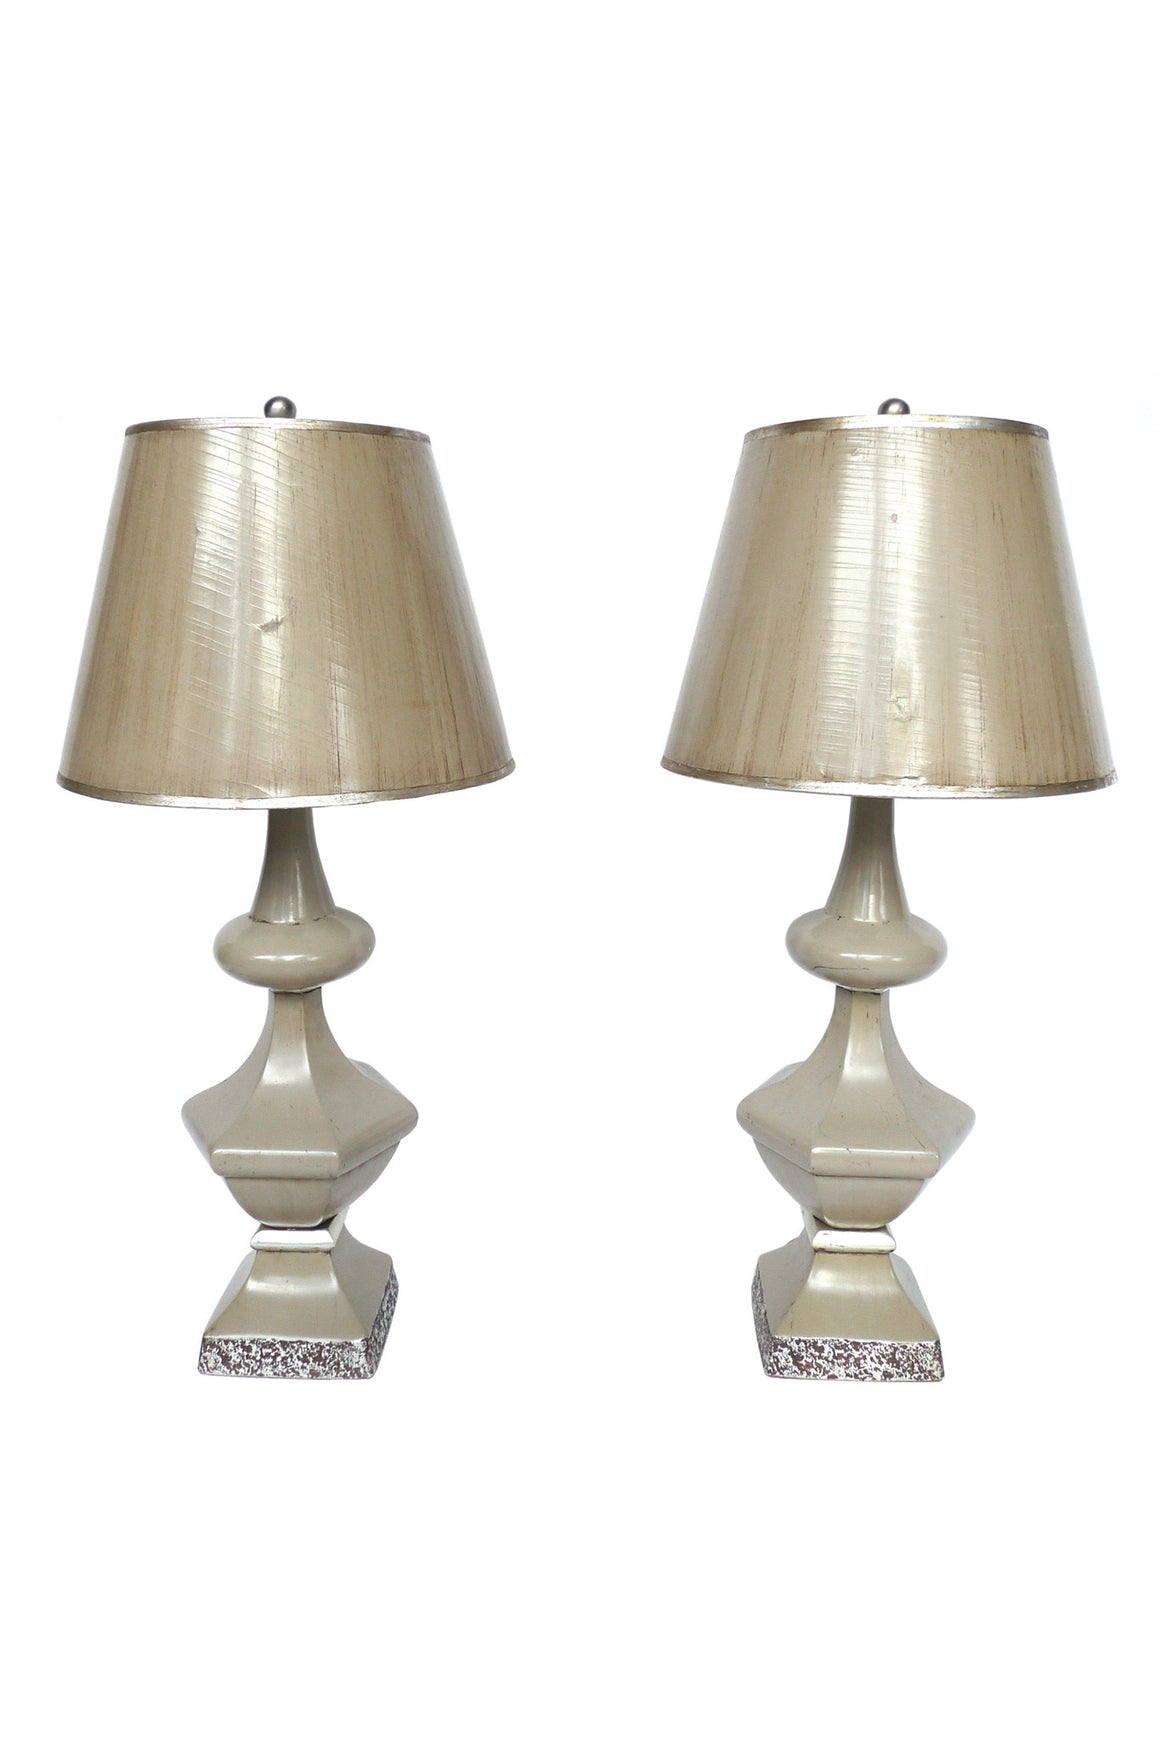 Pair of 1950s Dorothy Draper Table Lamps